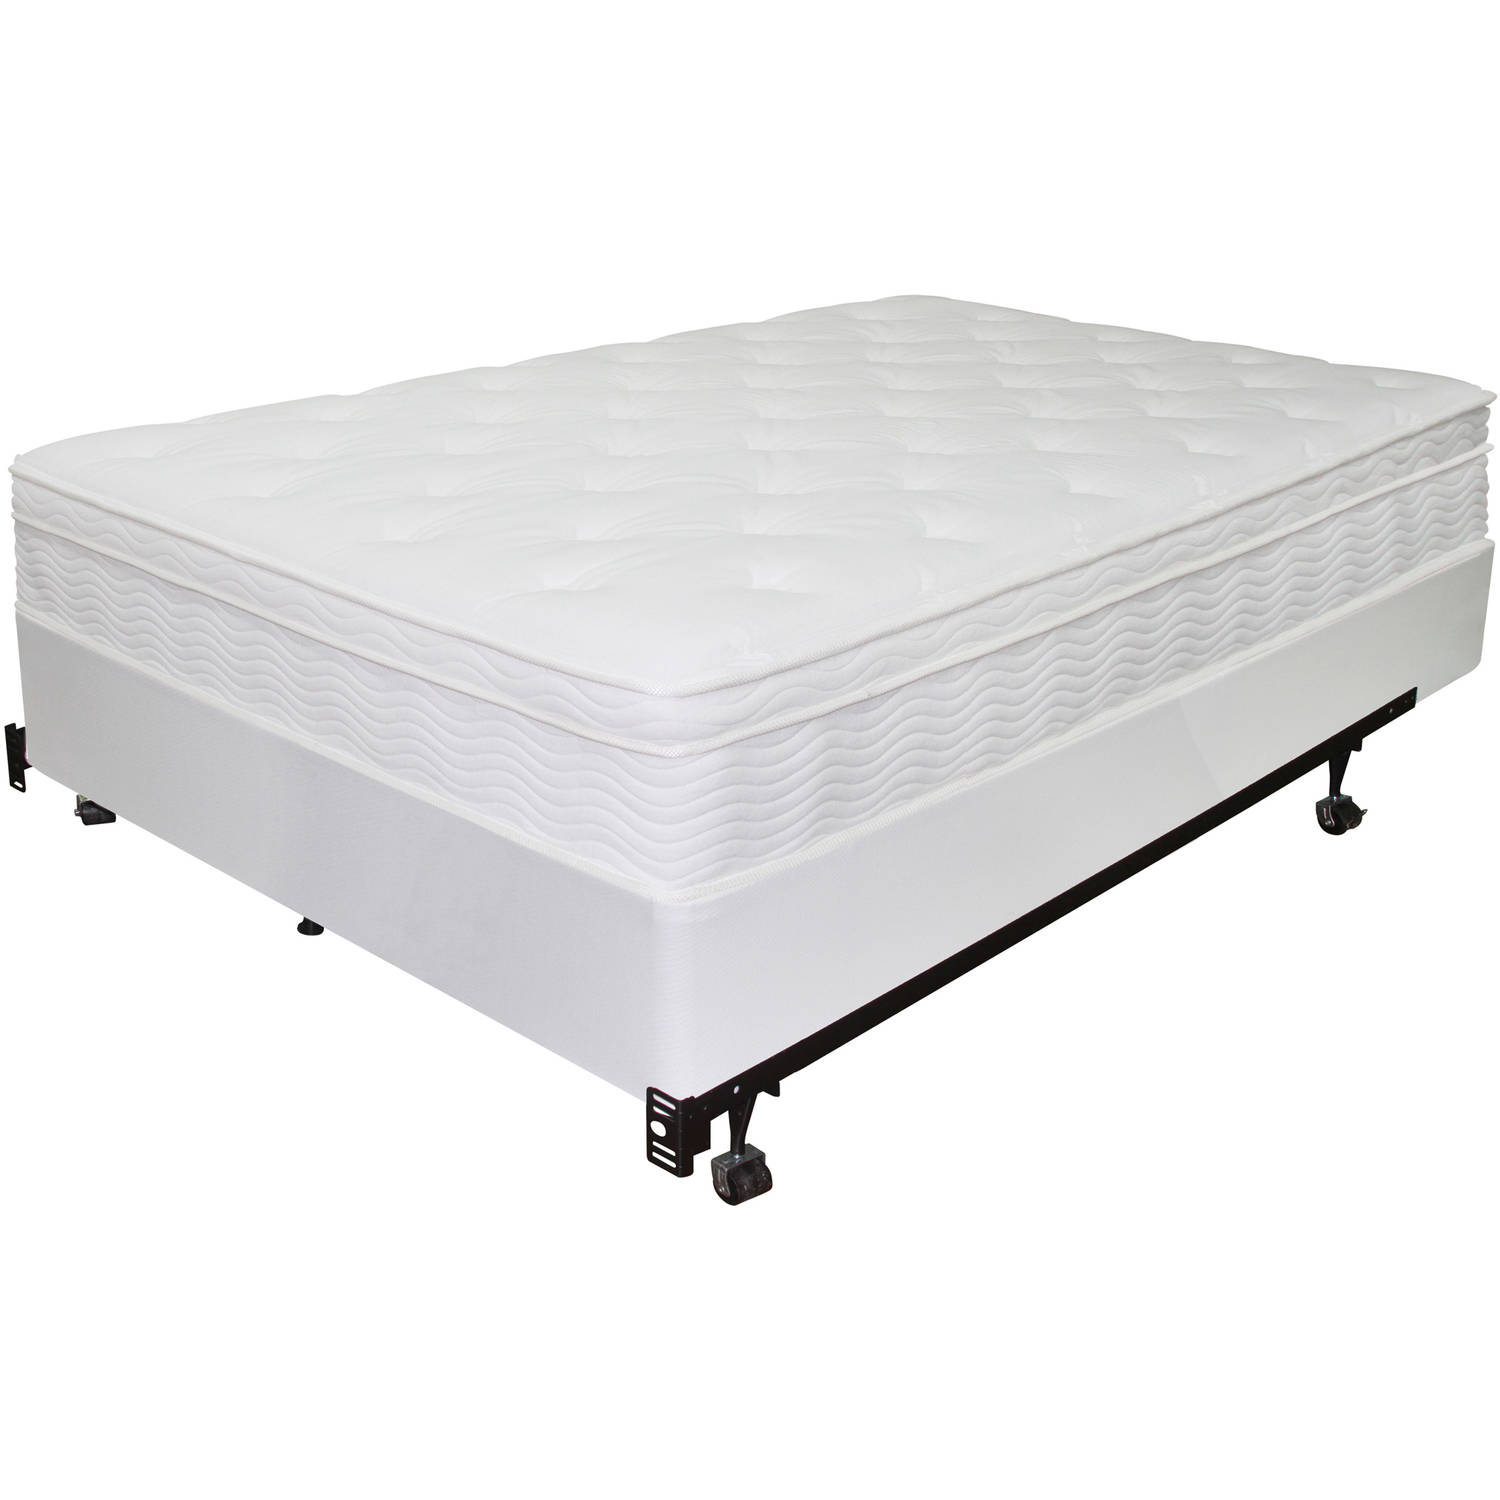 "Spa Sensations 7.5"" High Bi-Fold Box Spring Queen Size ..."